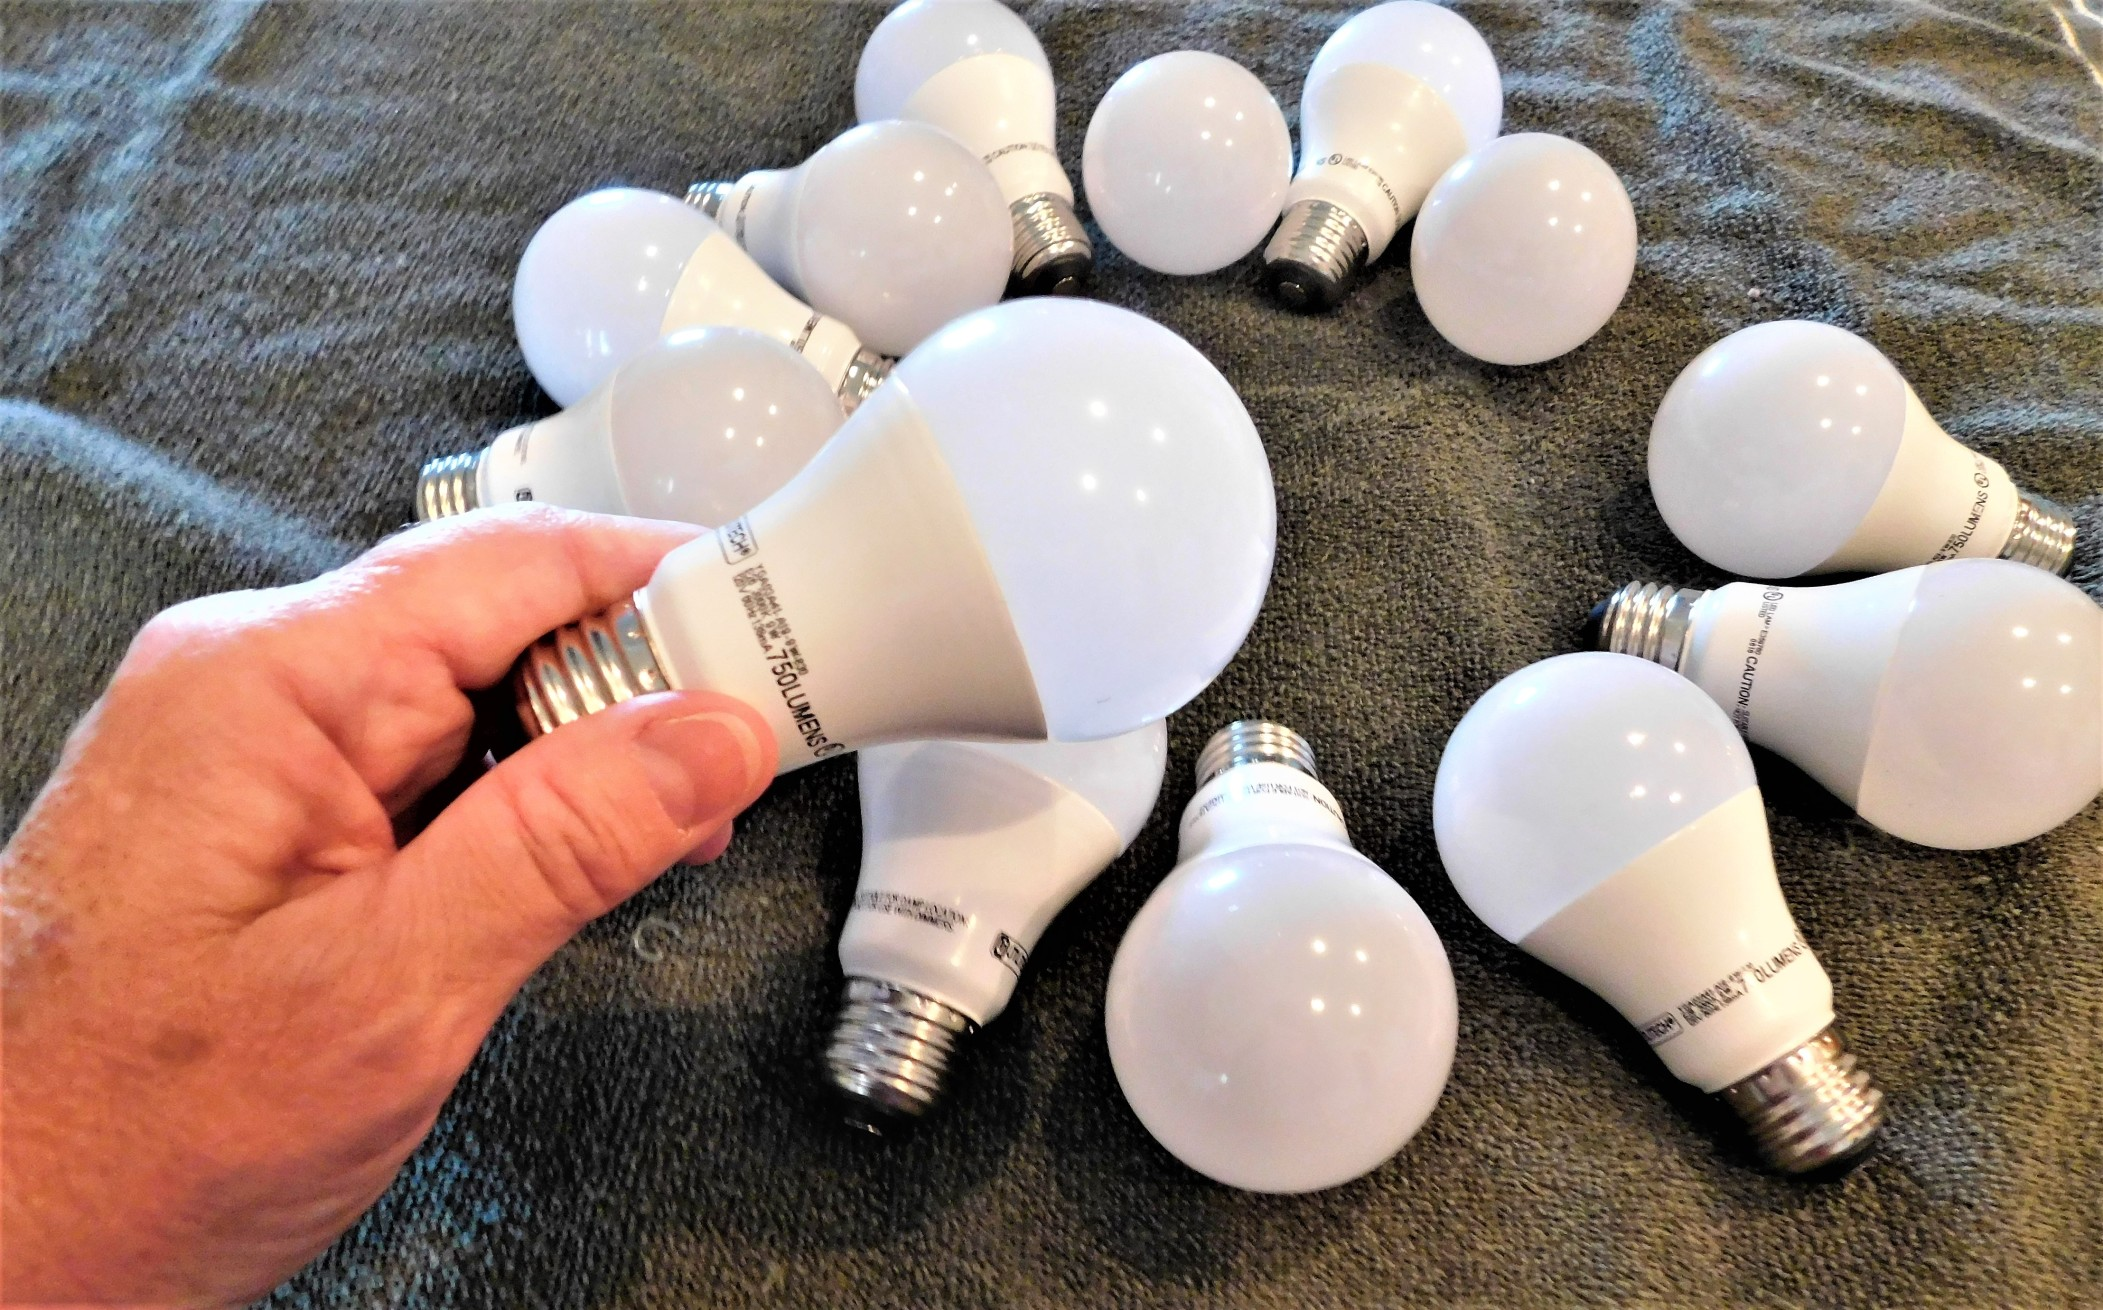 image of light bulbs and a hand holding one